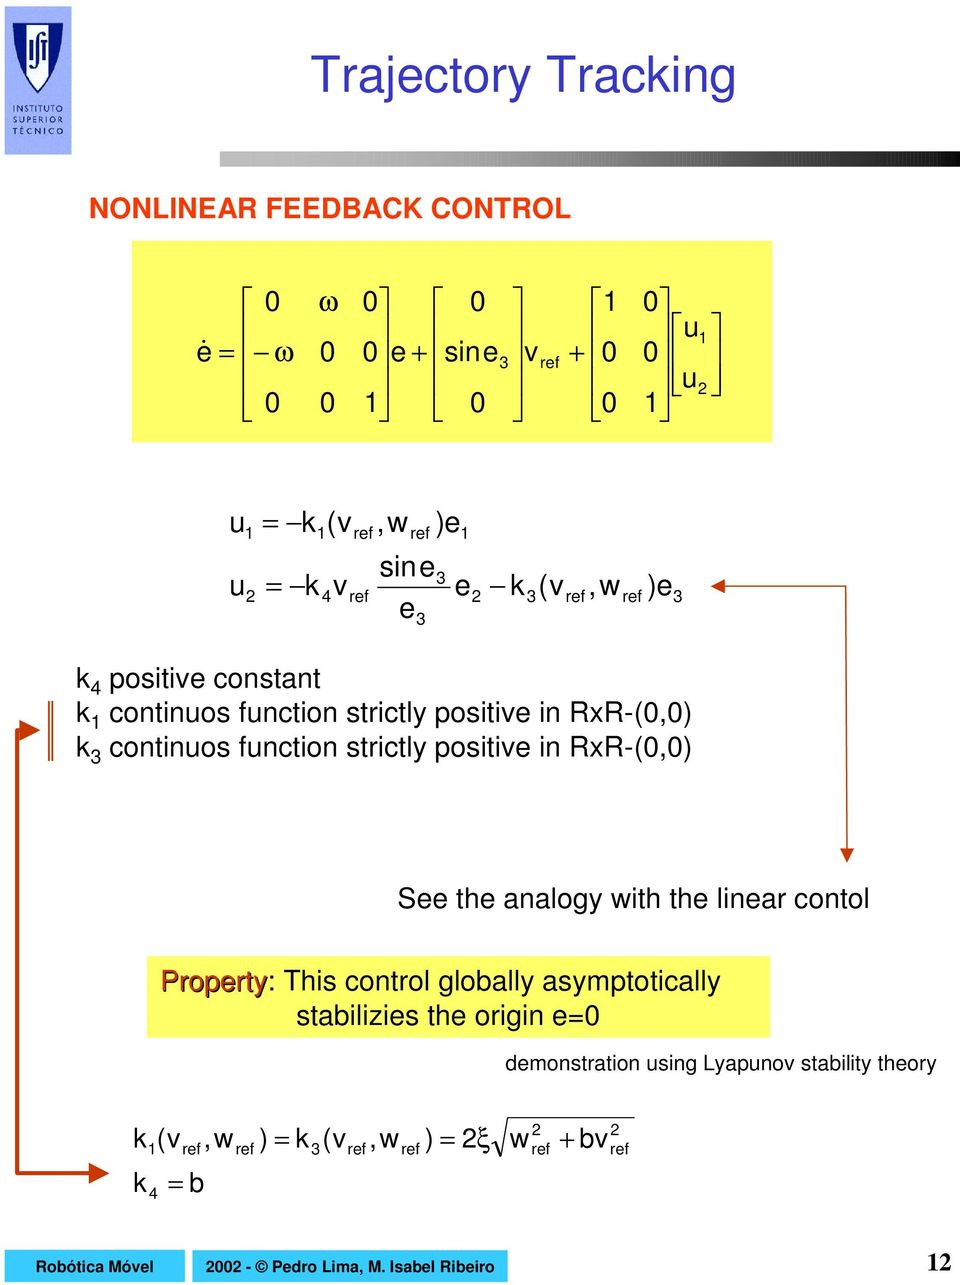 RxR-(,) k continos fnction strictly positi in RxR-(,) S th analogy with th linar contol Proprty: